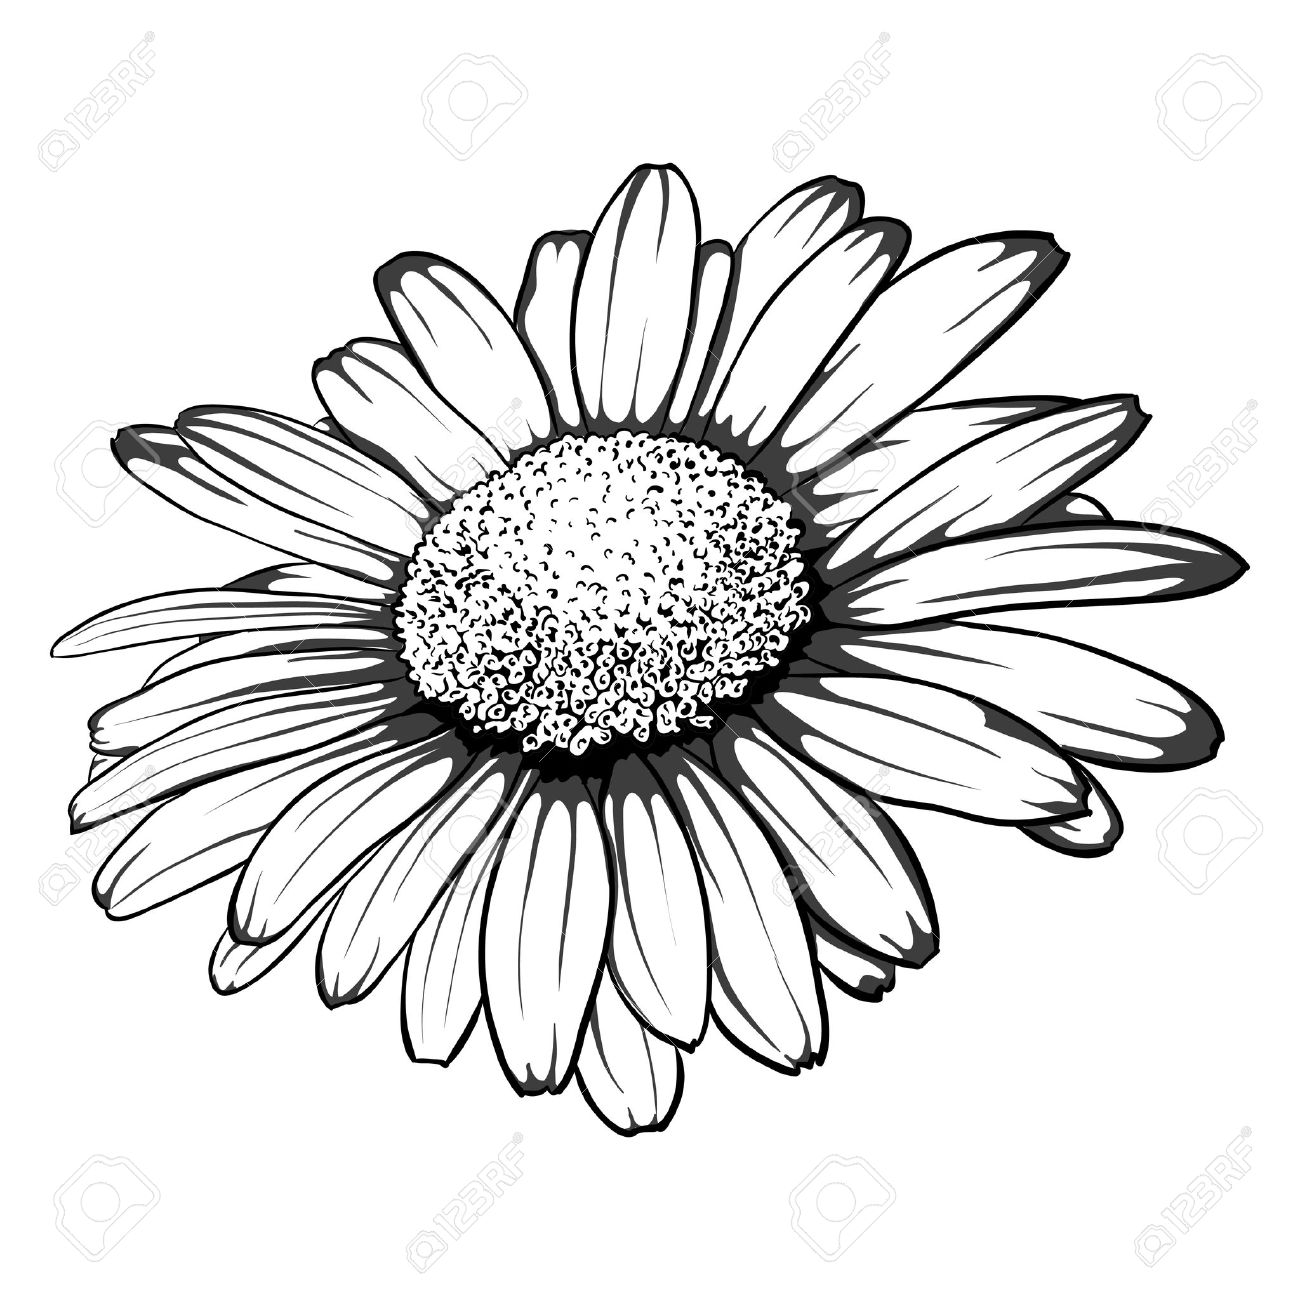 White daisy drawing at getdrawings free for personal use white 1300x1300 beautiful monochrome black and white daisy flower isolated izmirmasajfo